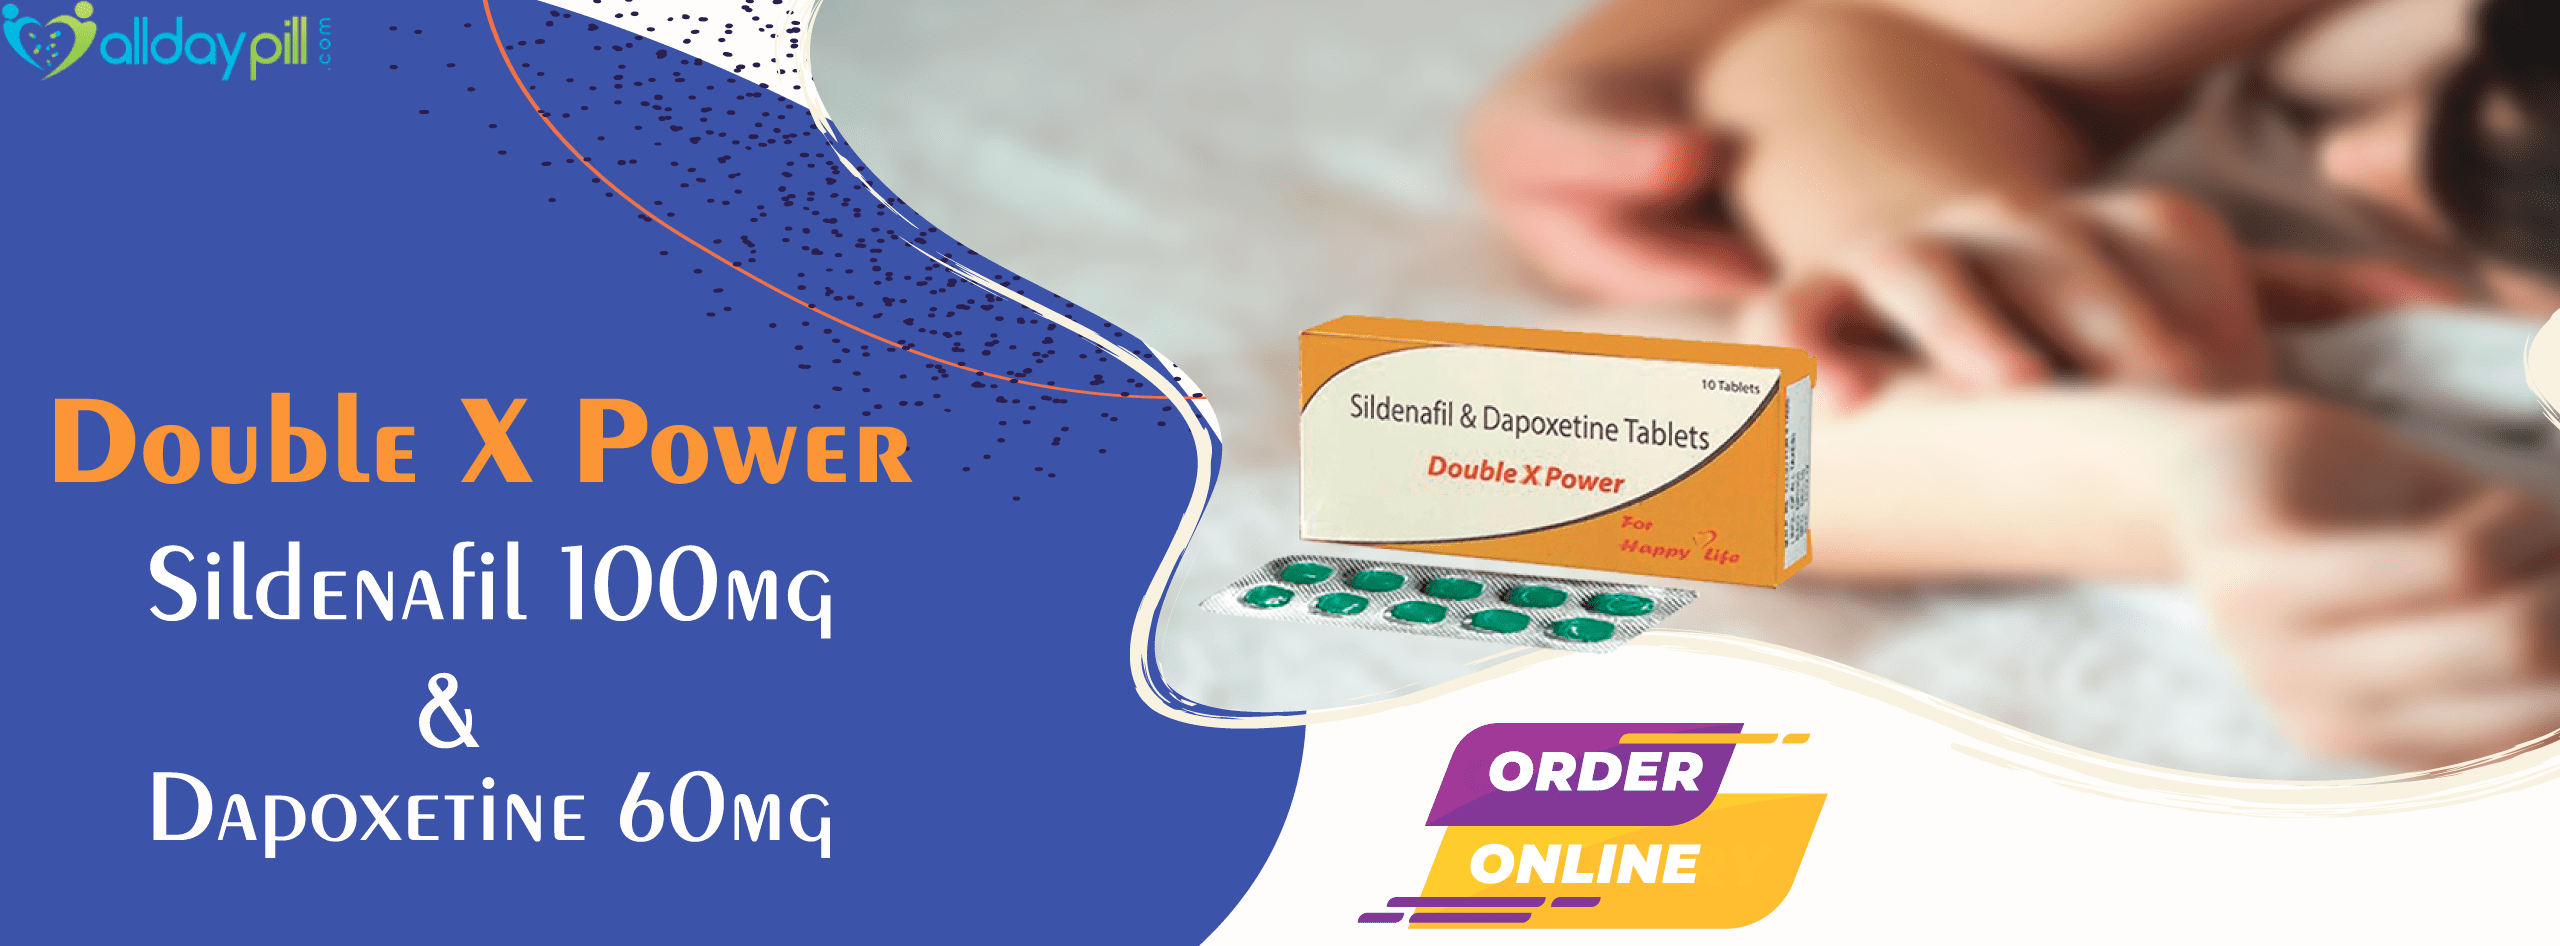 Sildenafil Dapoxetine Tablets Online l Double x power